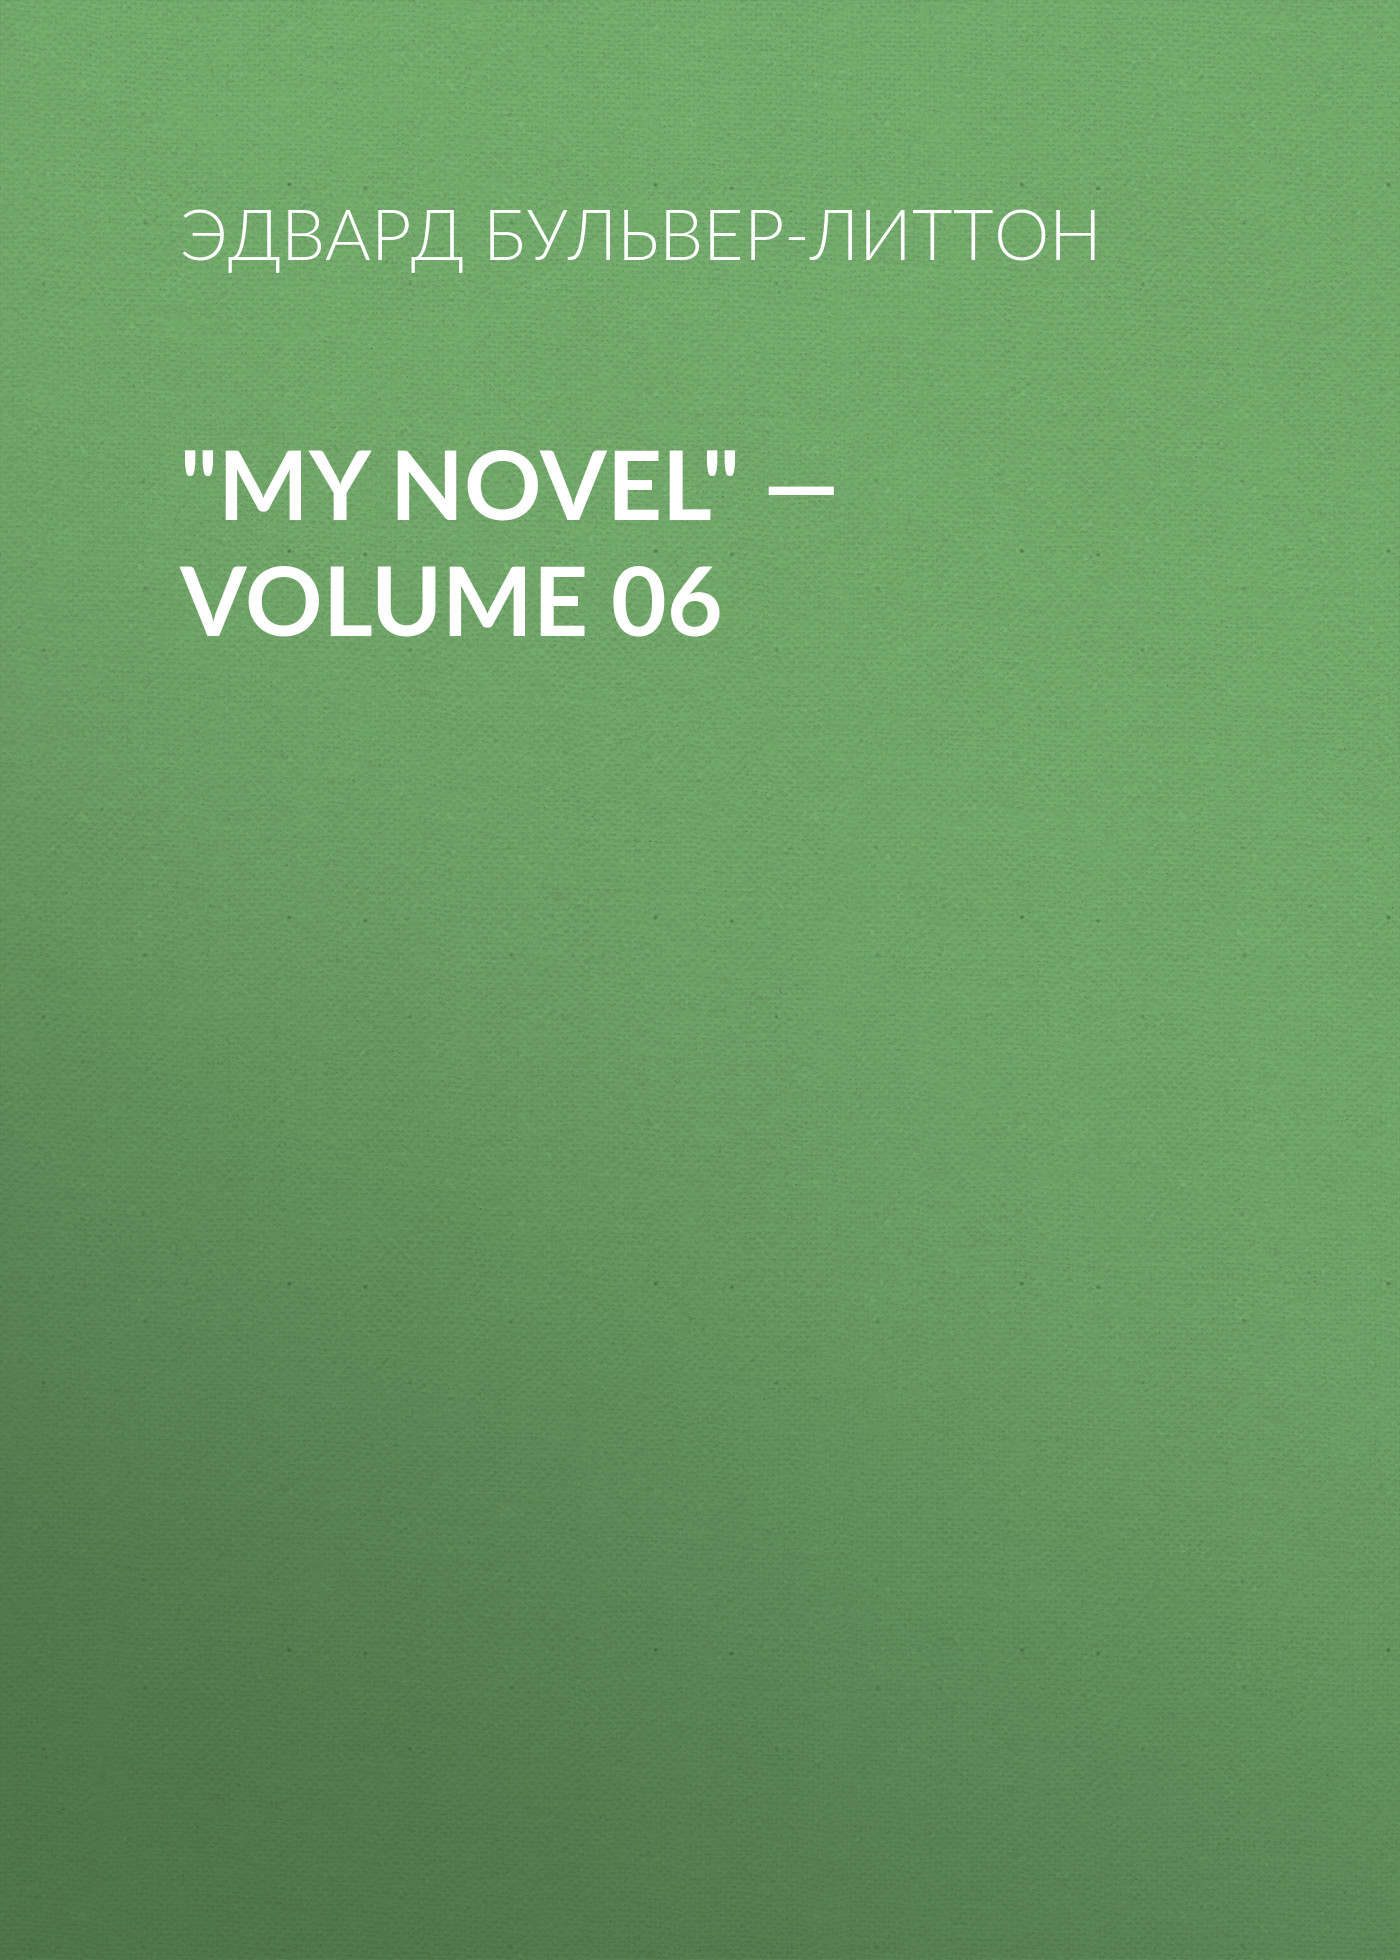 Эдвард Бульвер-Литтон My Novel — Volume 06 эдвард бульвер литтон my novel volume 05